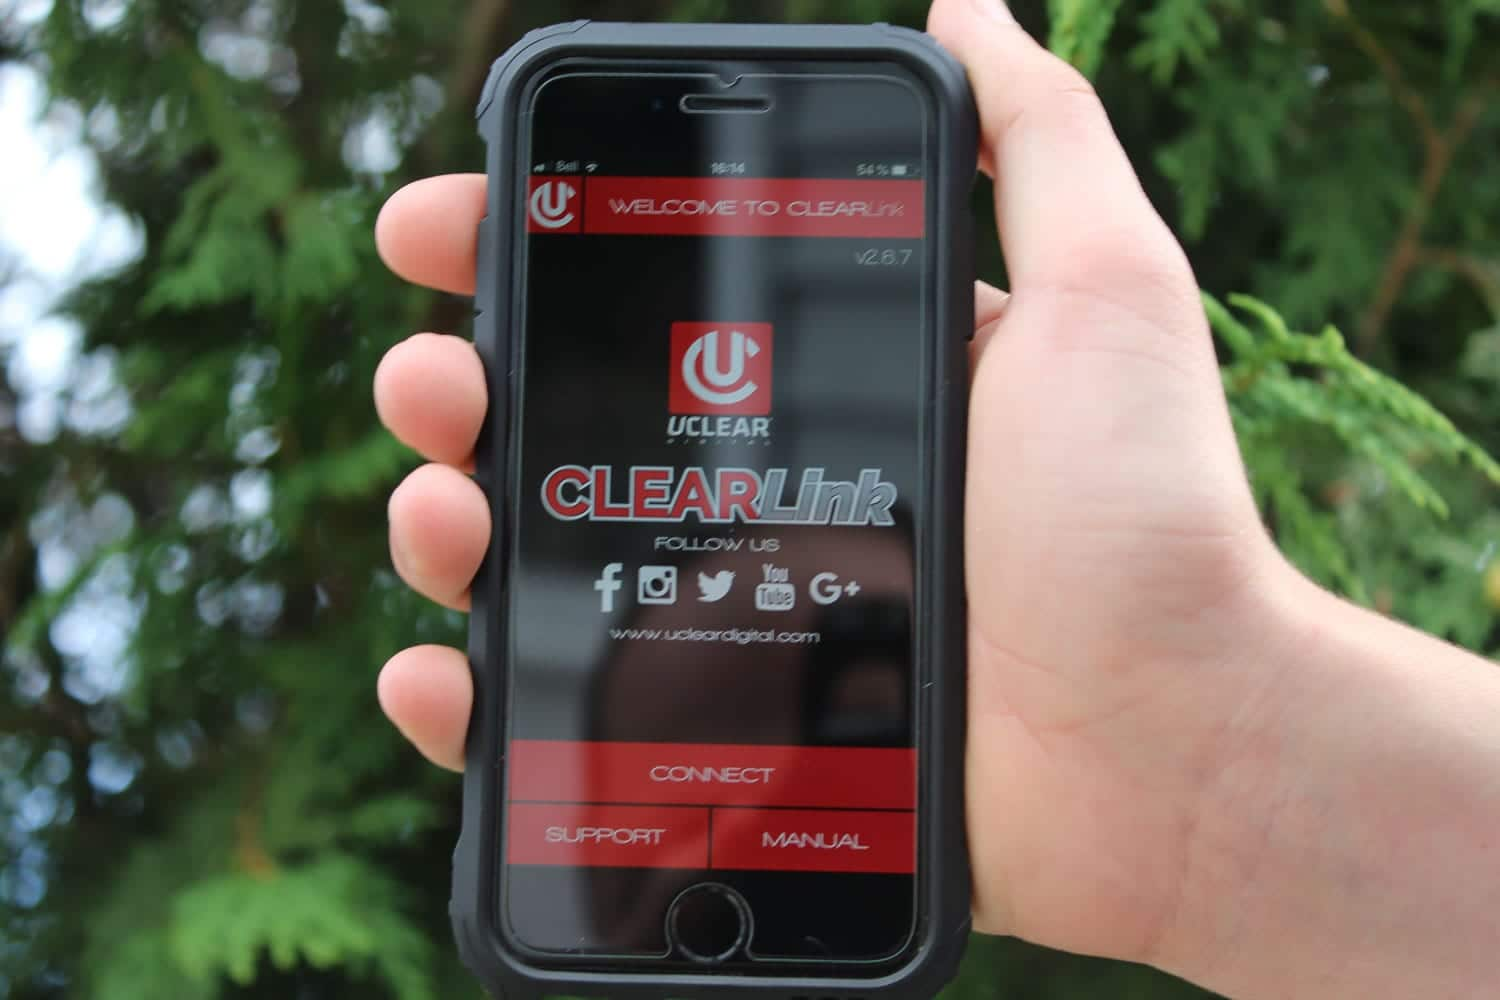 UCLEAR Digital Communication System